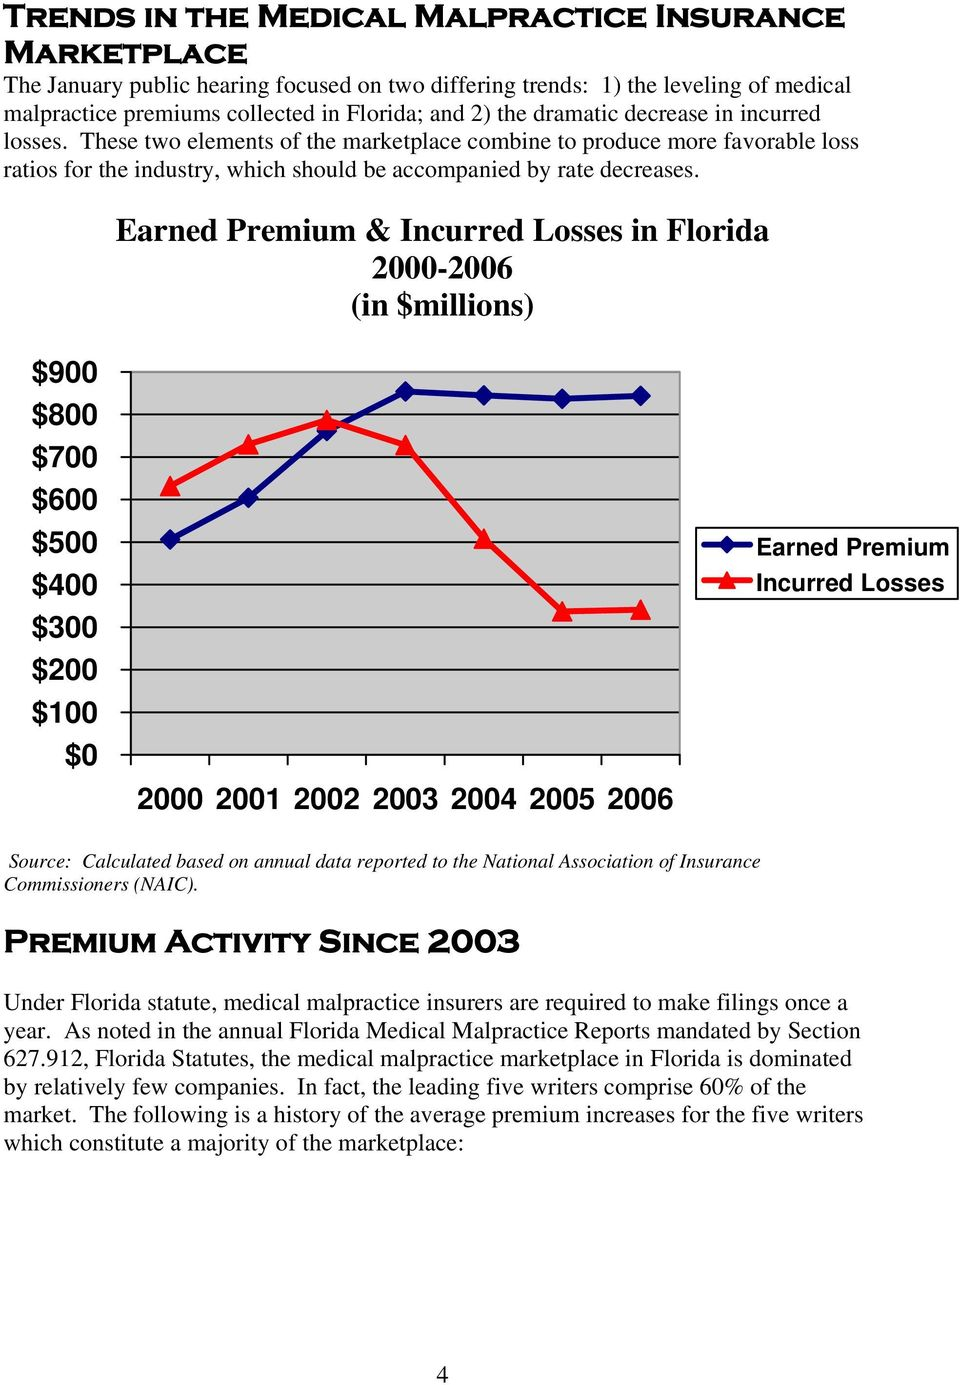 Earned Premium & Incurred Losses in Florida 2000-2006 (in $millions) $900 $800 $700 $600 $500 $400 $300 $200 $100 $0 2000 2001 2002 2003 2004 2005 2006 Earned Premium Incurred Losses Source: